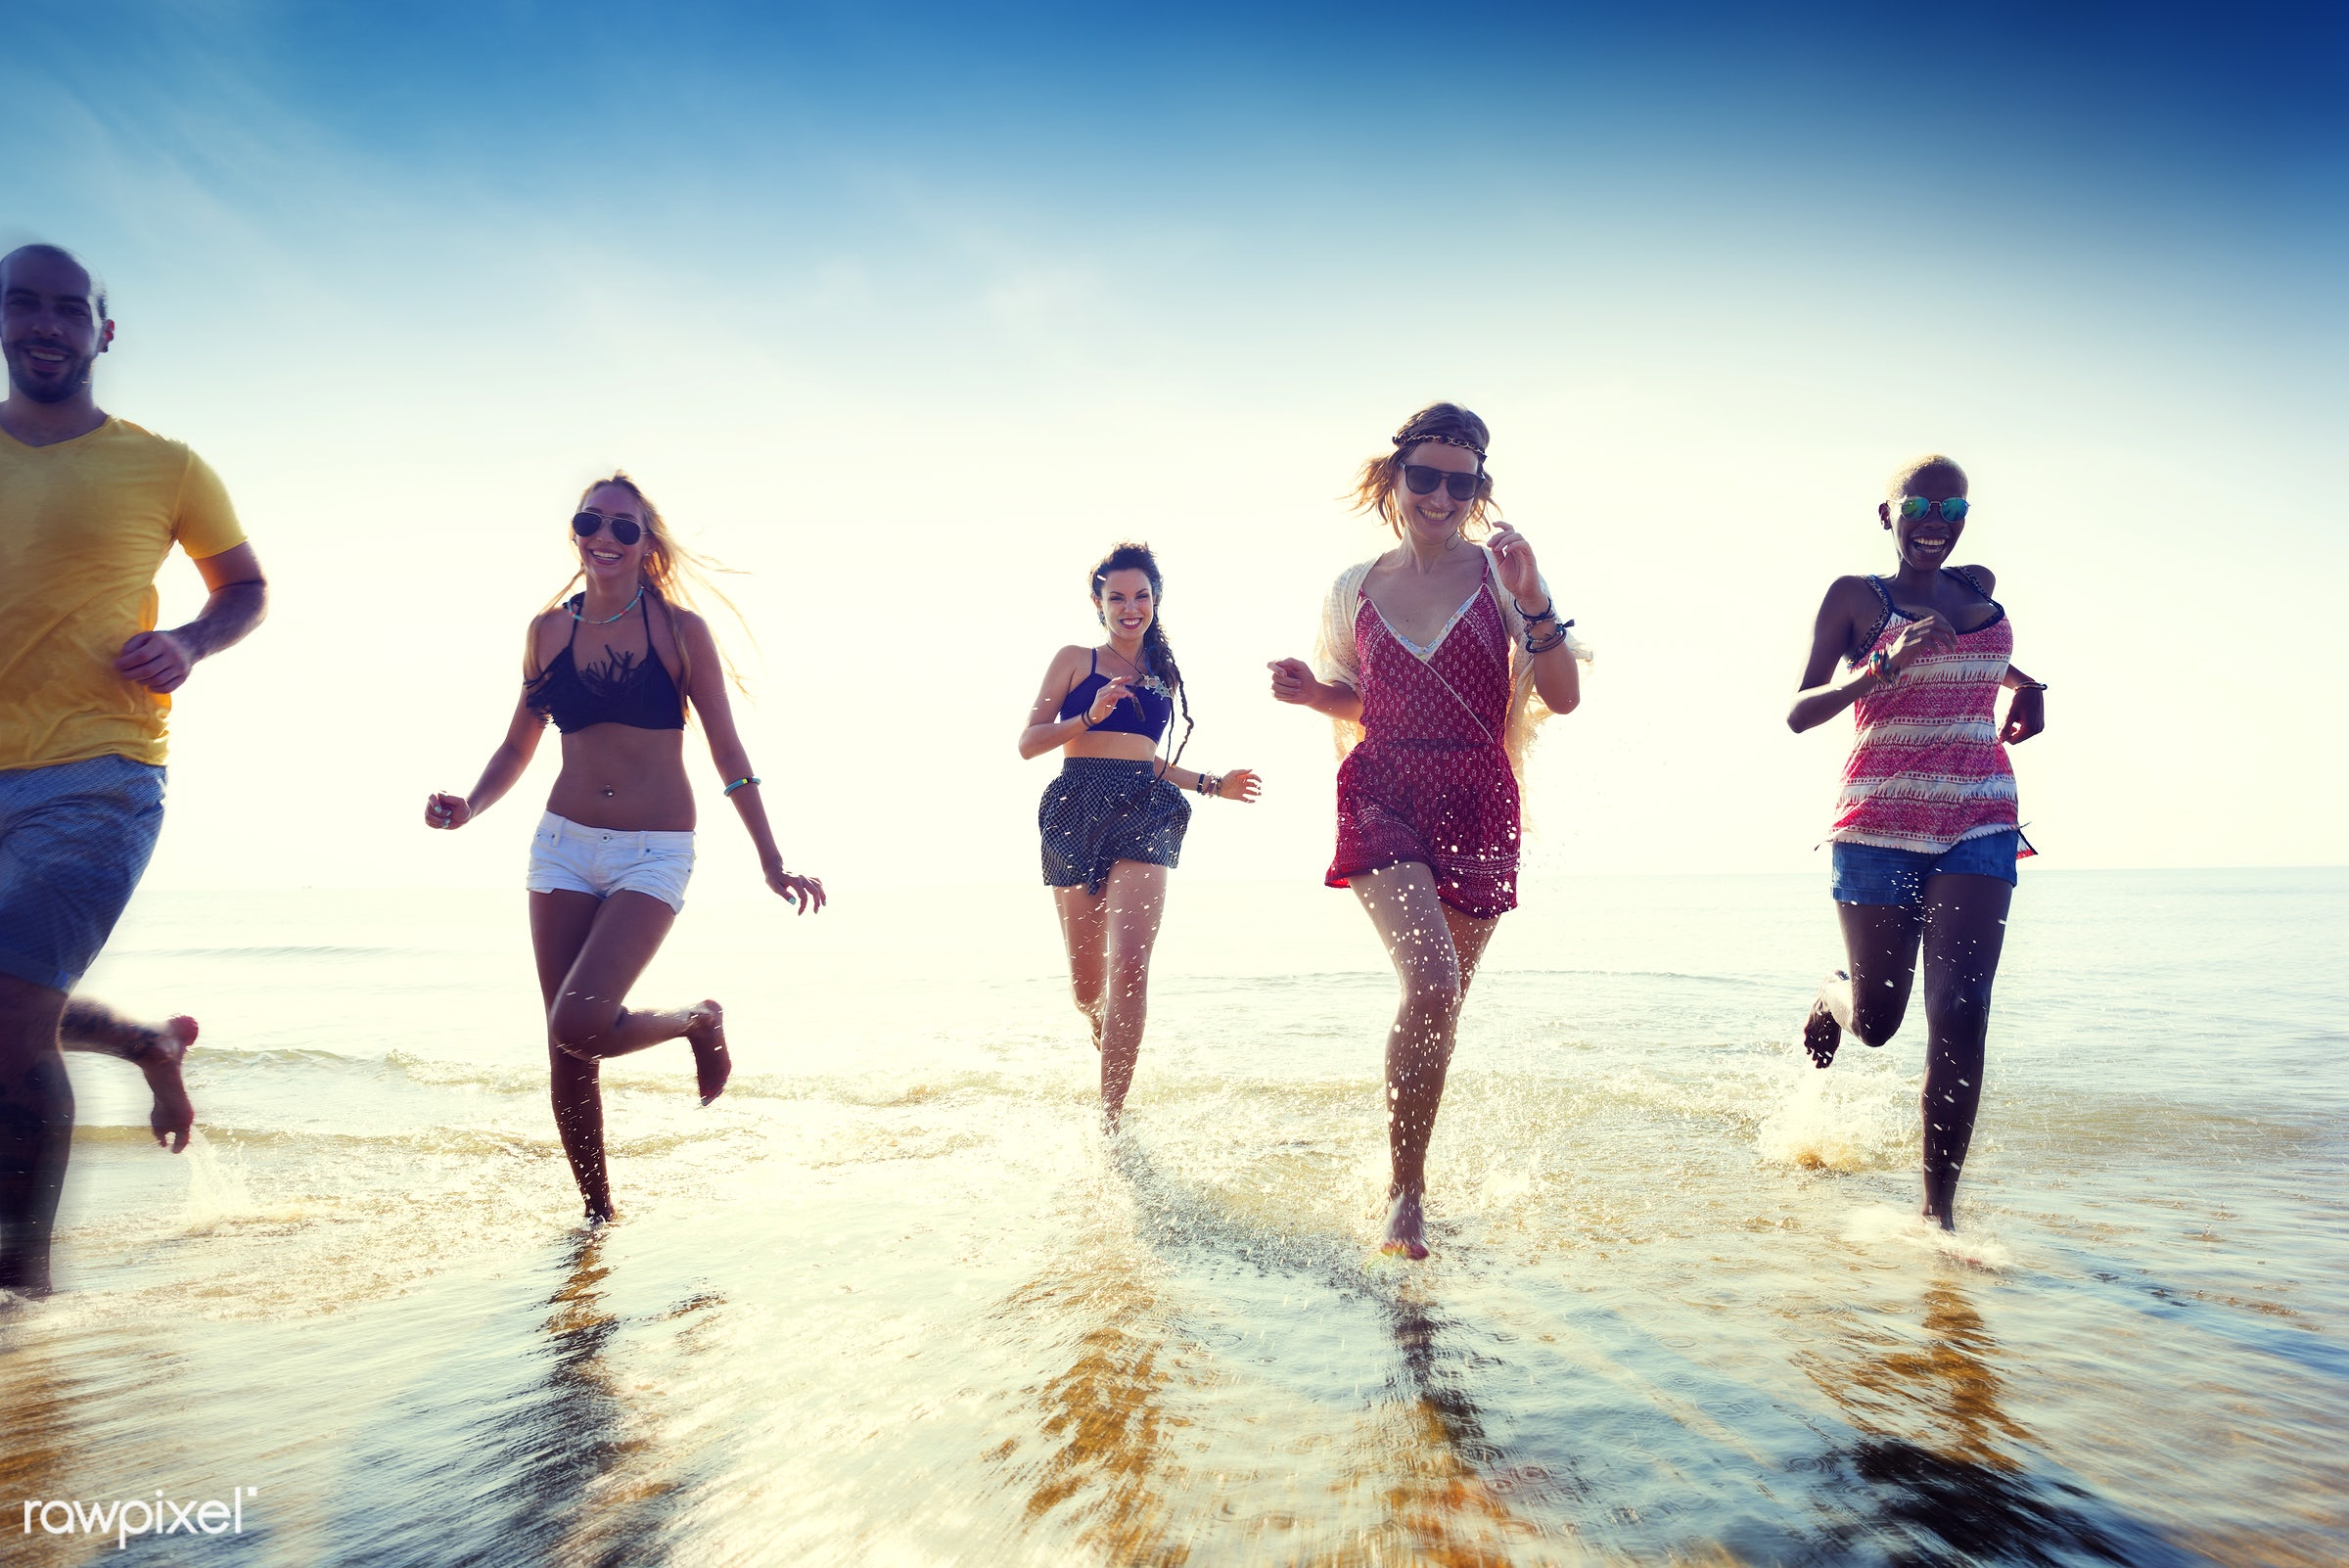 action, african descent, asian ethnicity, beach, bonding, cheerful, chilling, day, diverse, ecstatic, energy, enjoying,...